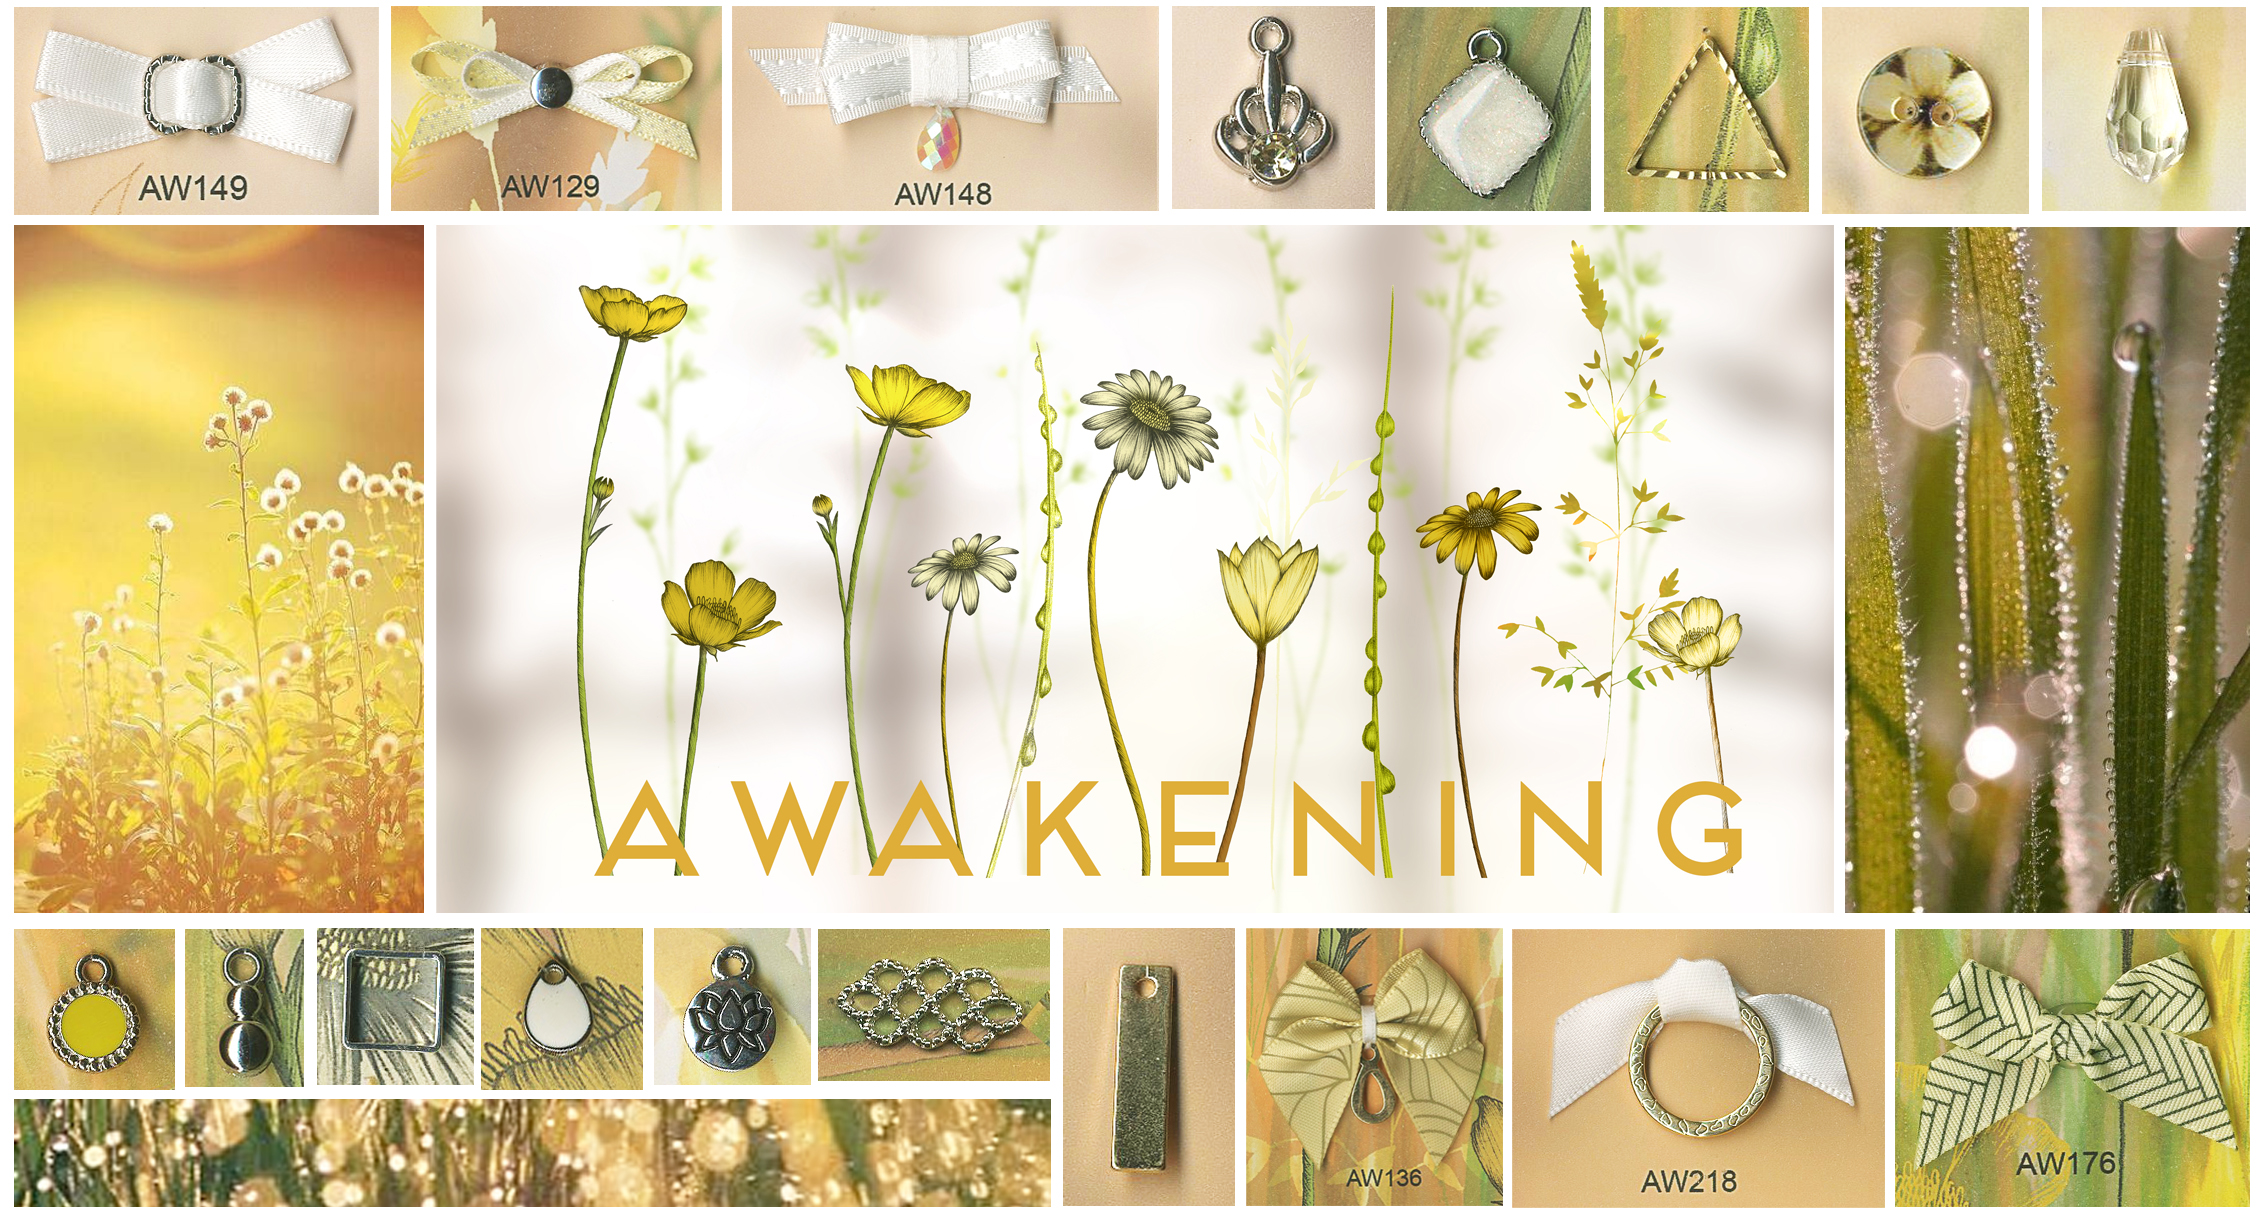 Awakening Lingerie Accessory Supplier UK